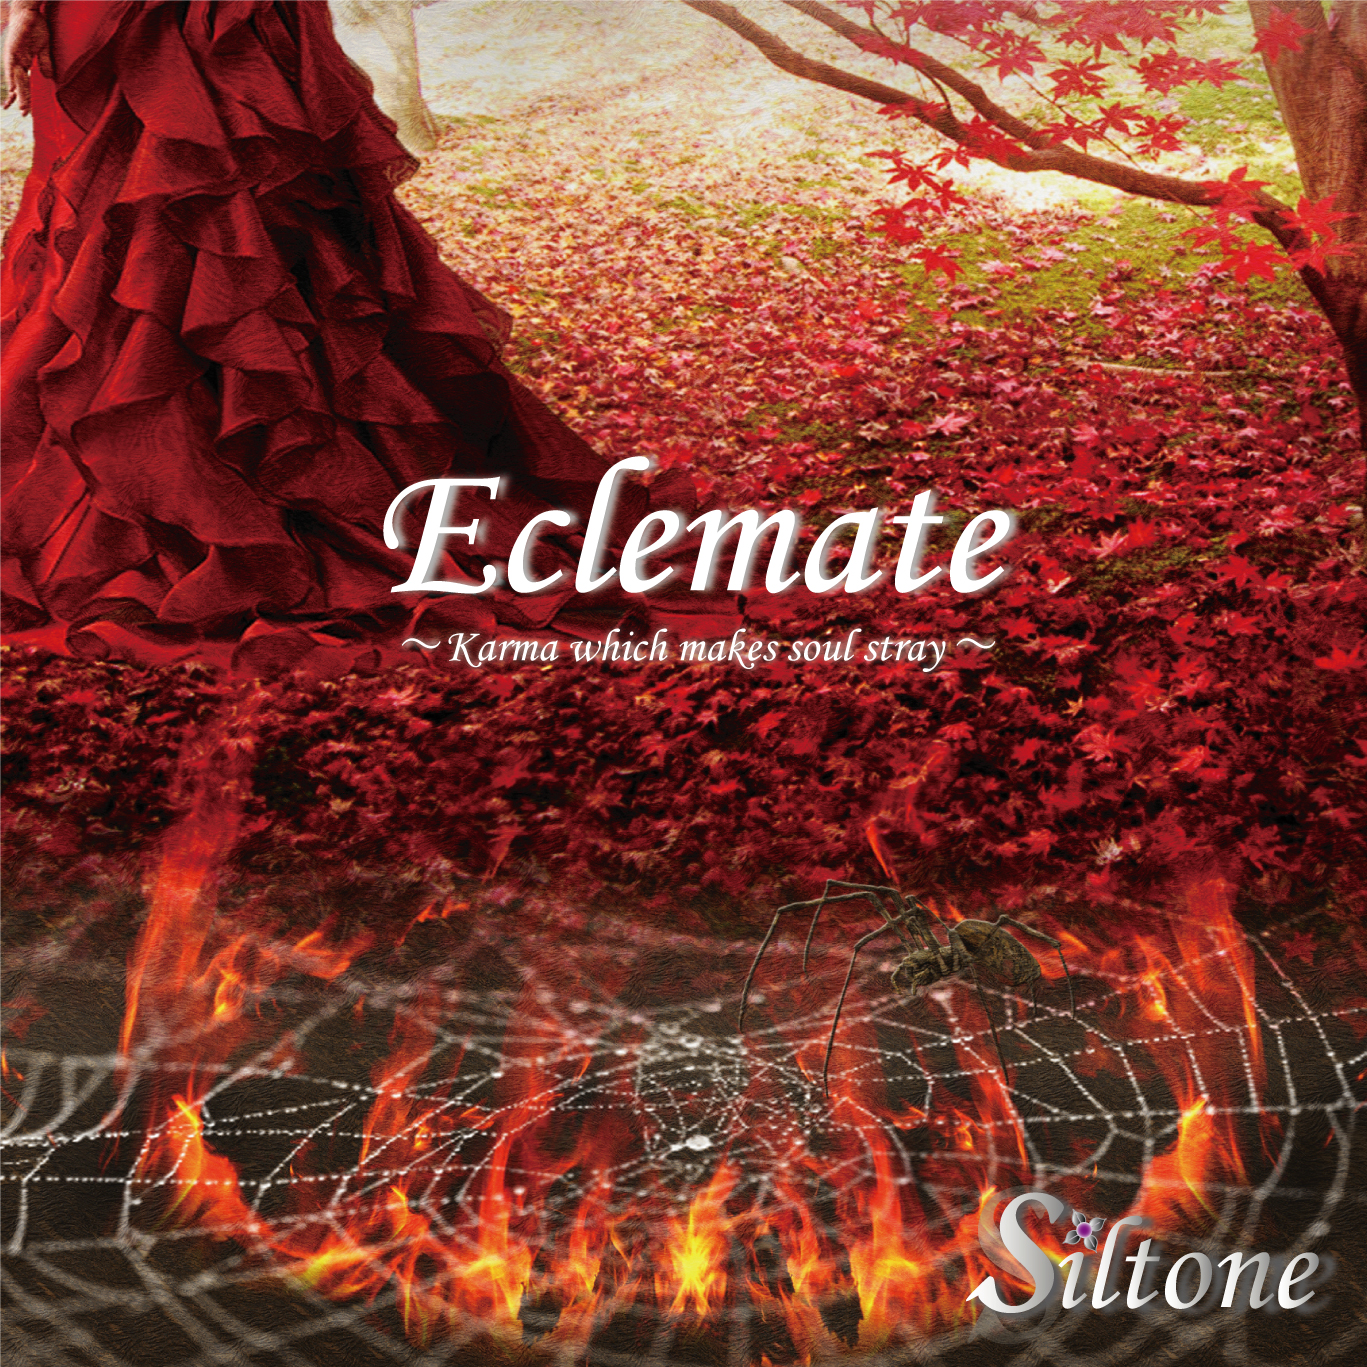 Eclemate